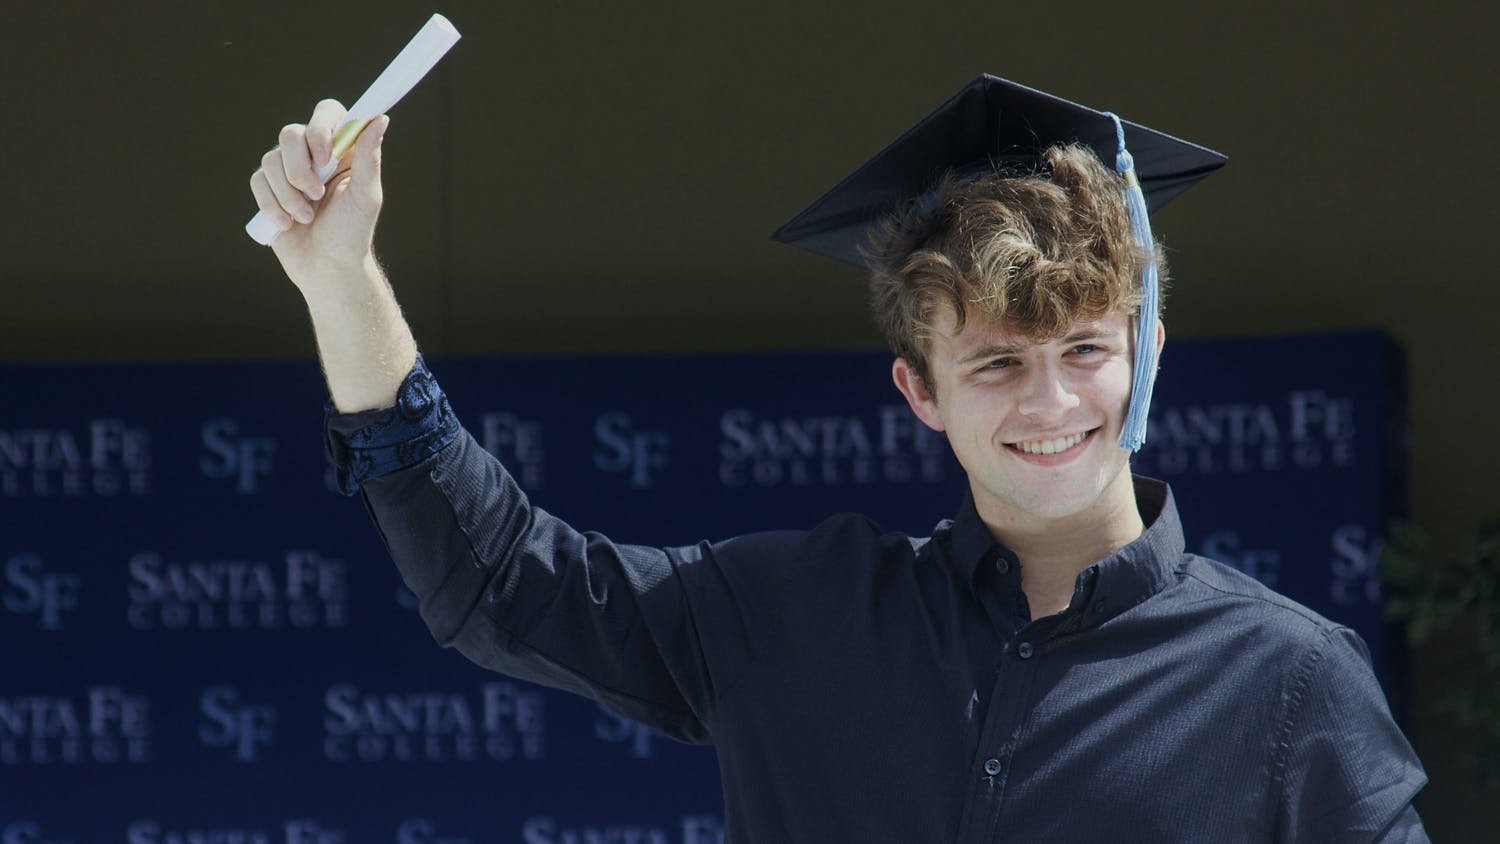 Alexander McCollum, 19, a Santa Fe Associate of Arts graduate stands through the sunroof of a white limousine with his hand holding a paper scroll raised in the air in celebration during Santa Fe College's Drive-Thru Grad Walk ceremony on Thursday, April 29, 2021.